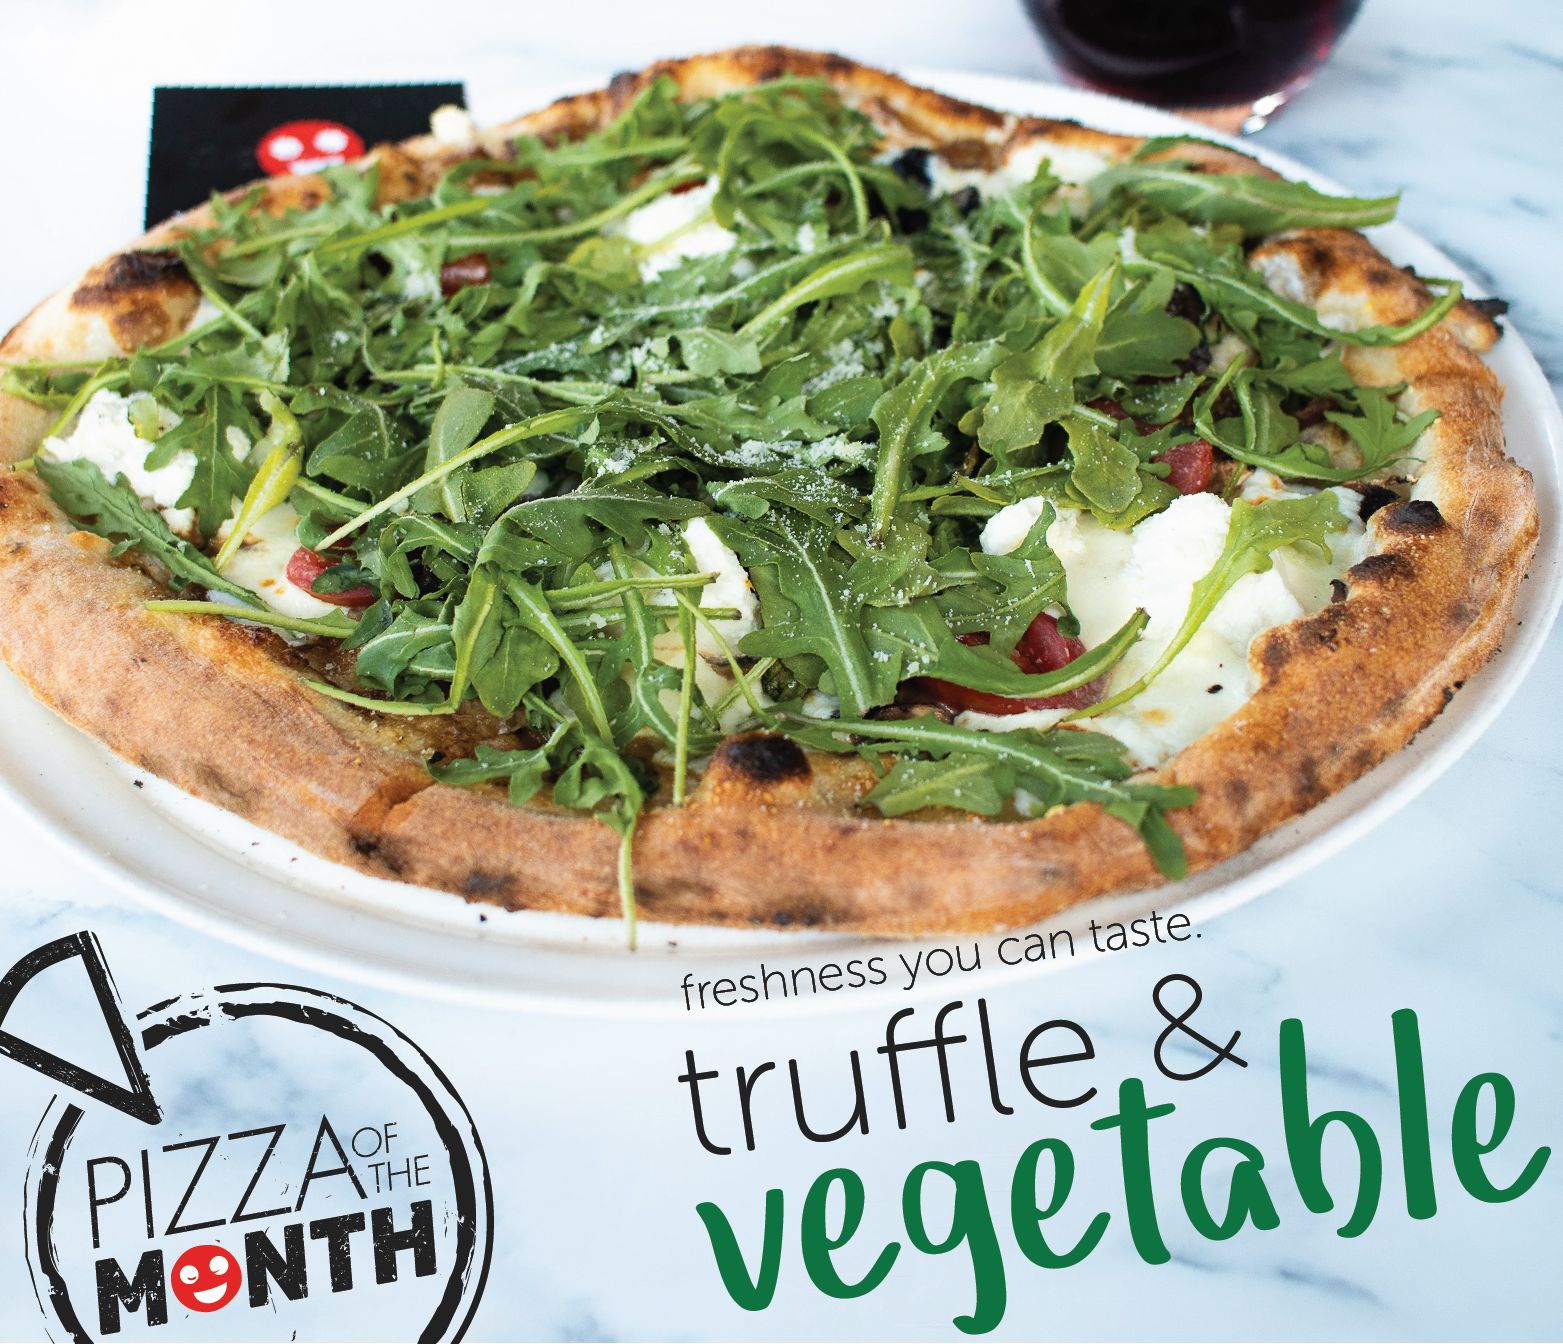 March Pizza of the Month, truffle & vegetable.